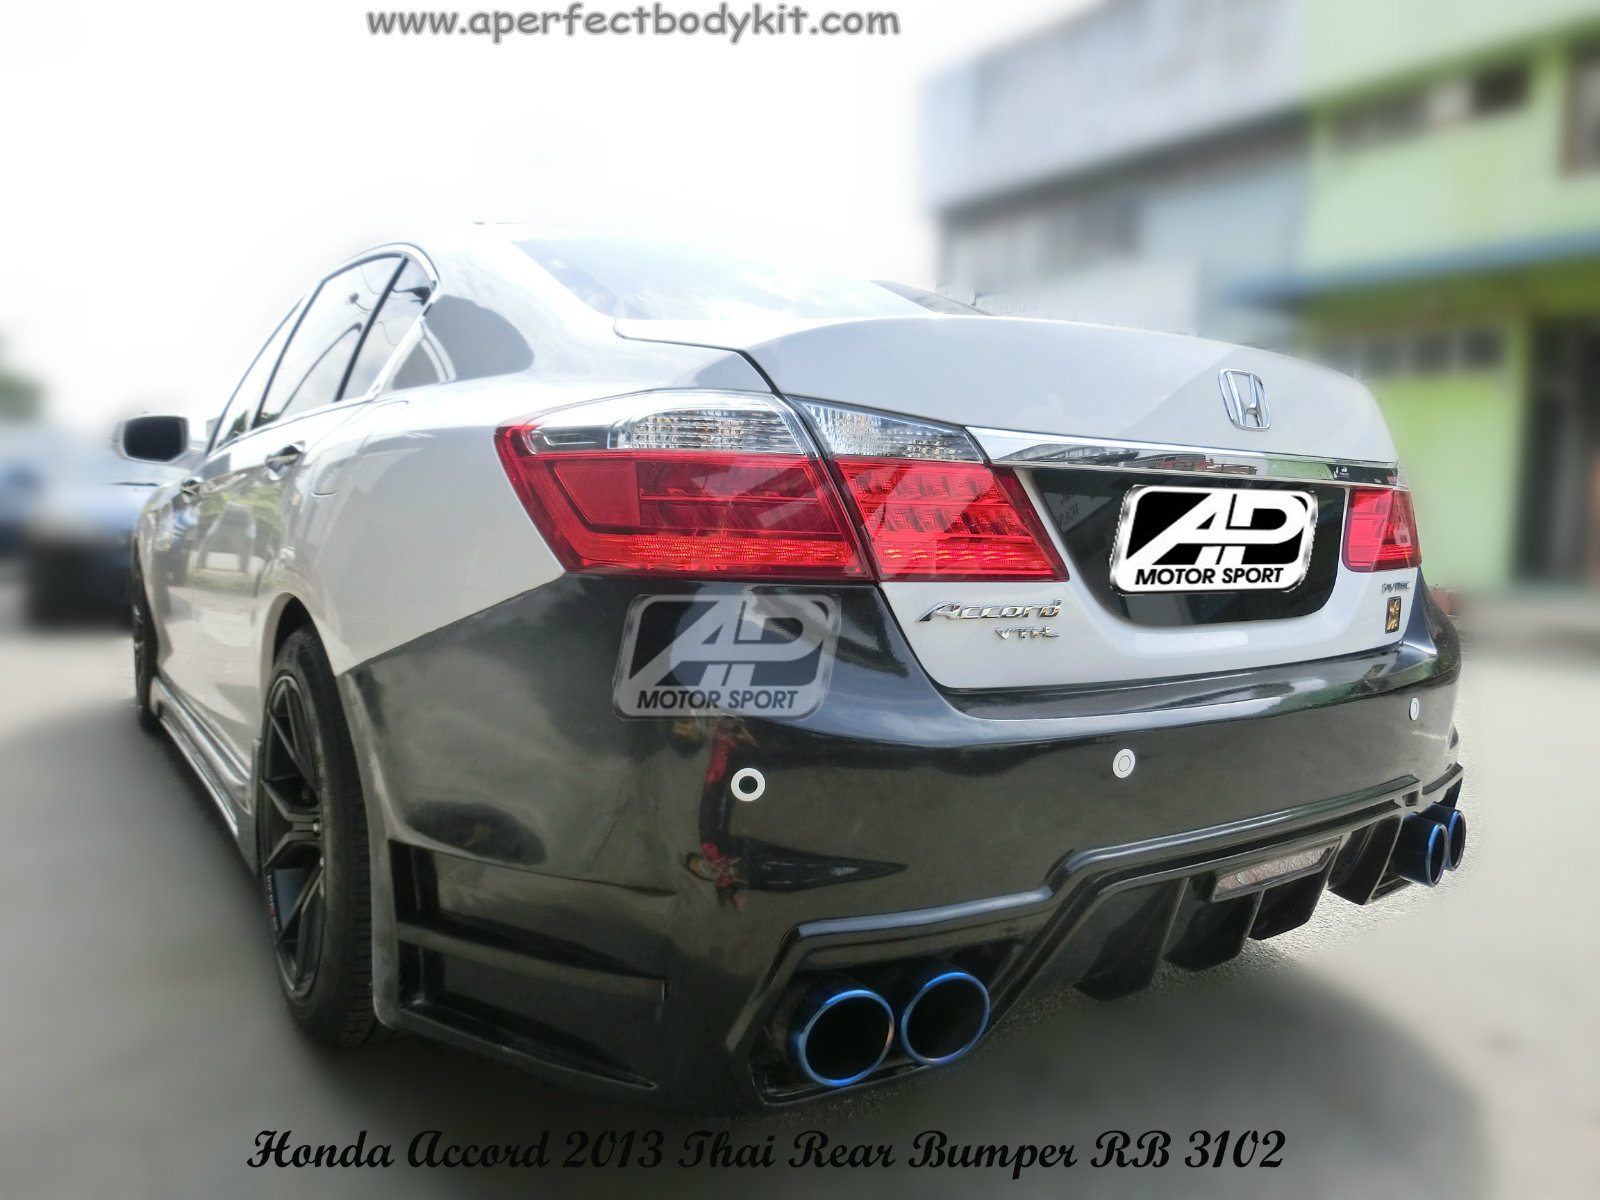 Honda Accord 2013 Thai Rear Bumper Honda Accord 2013 Johor